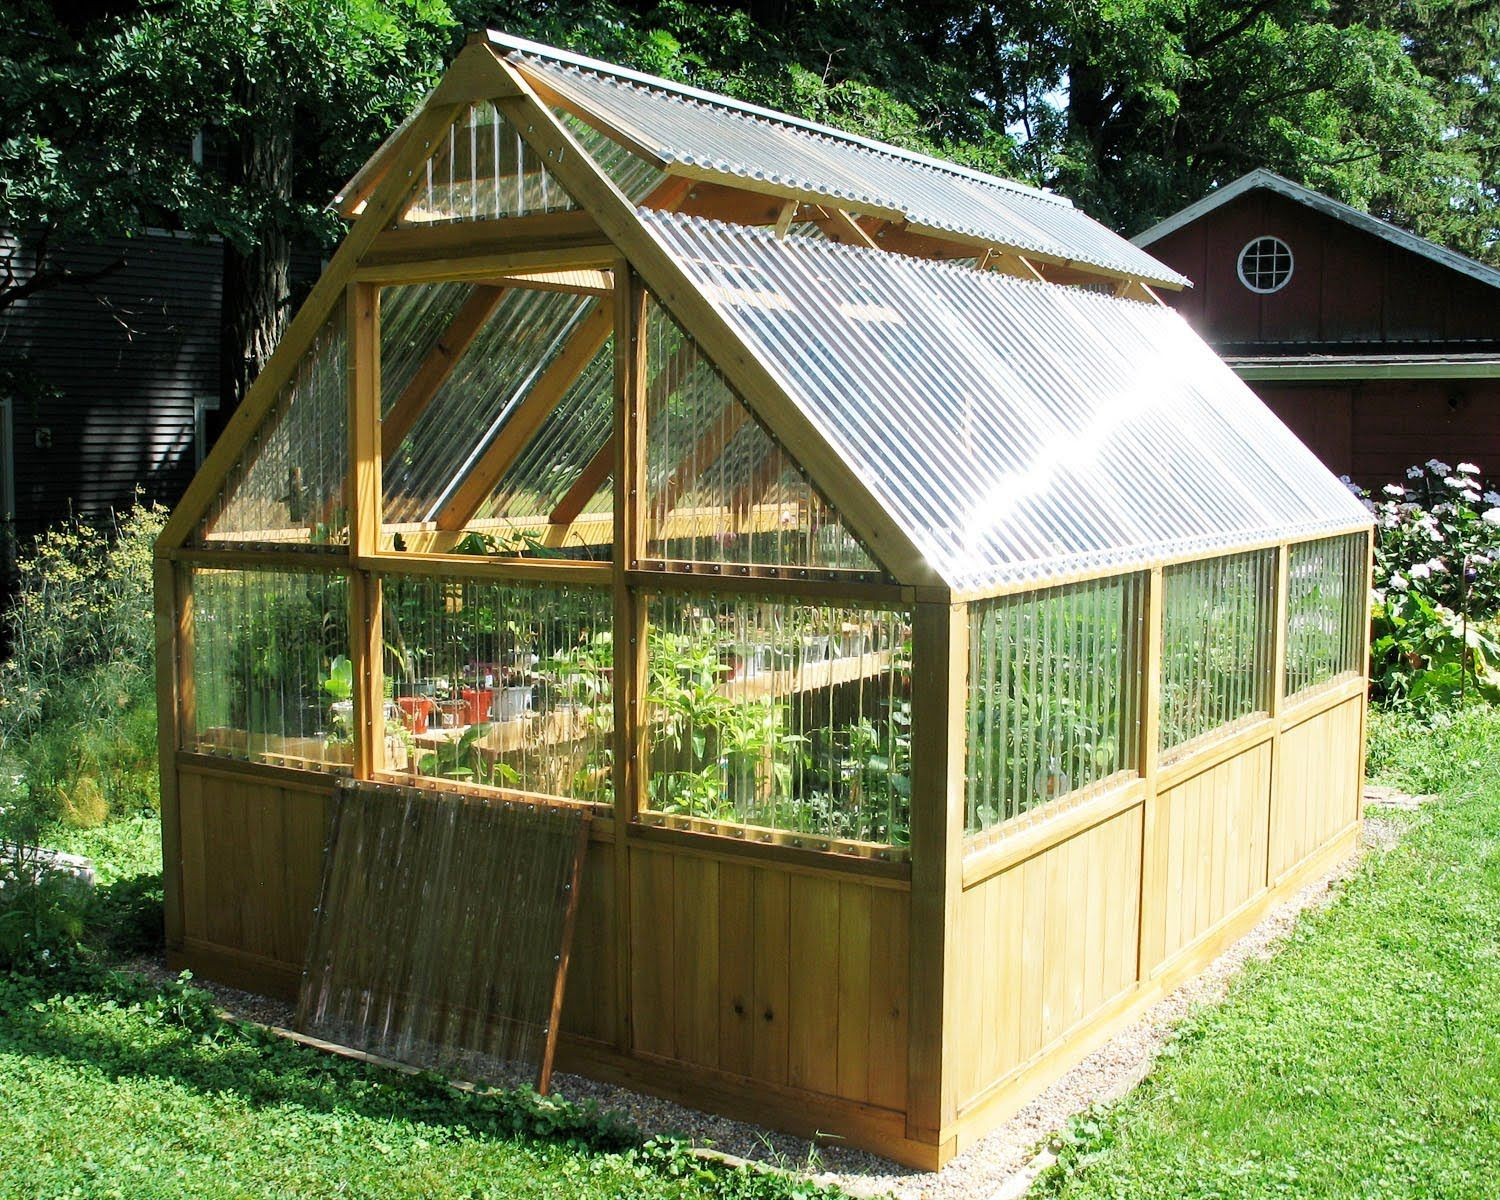 Diy greenhouse plans and greenhouse kits lexan polycarbonate cedar wood framed greenhouse